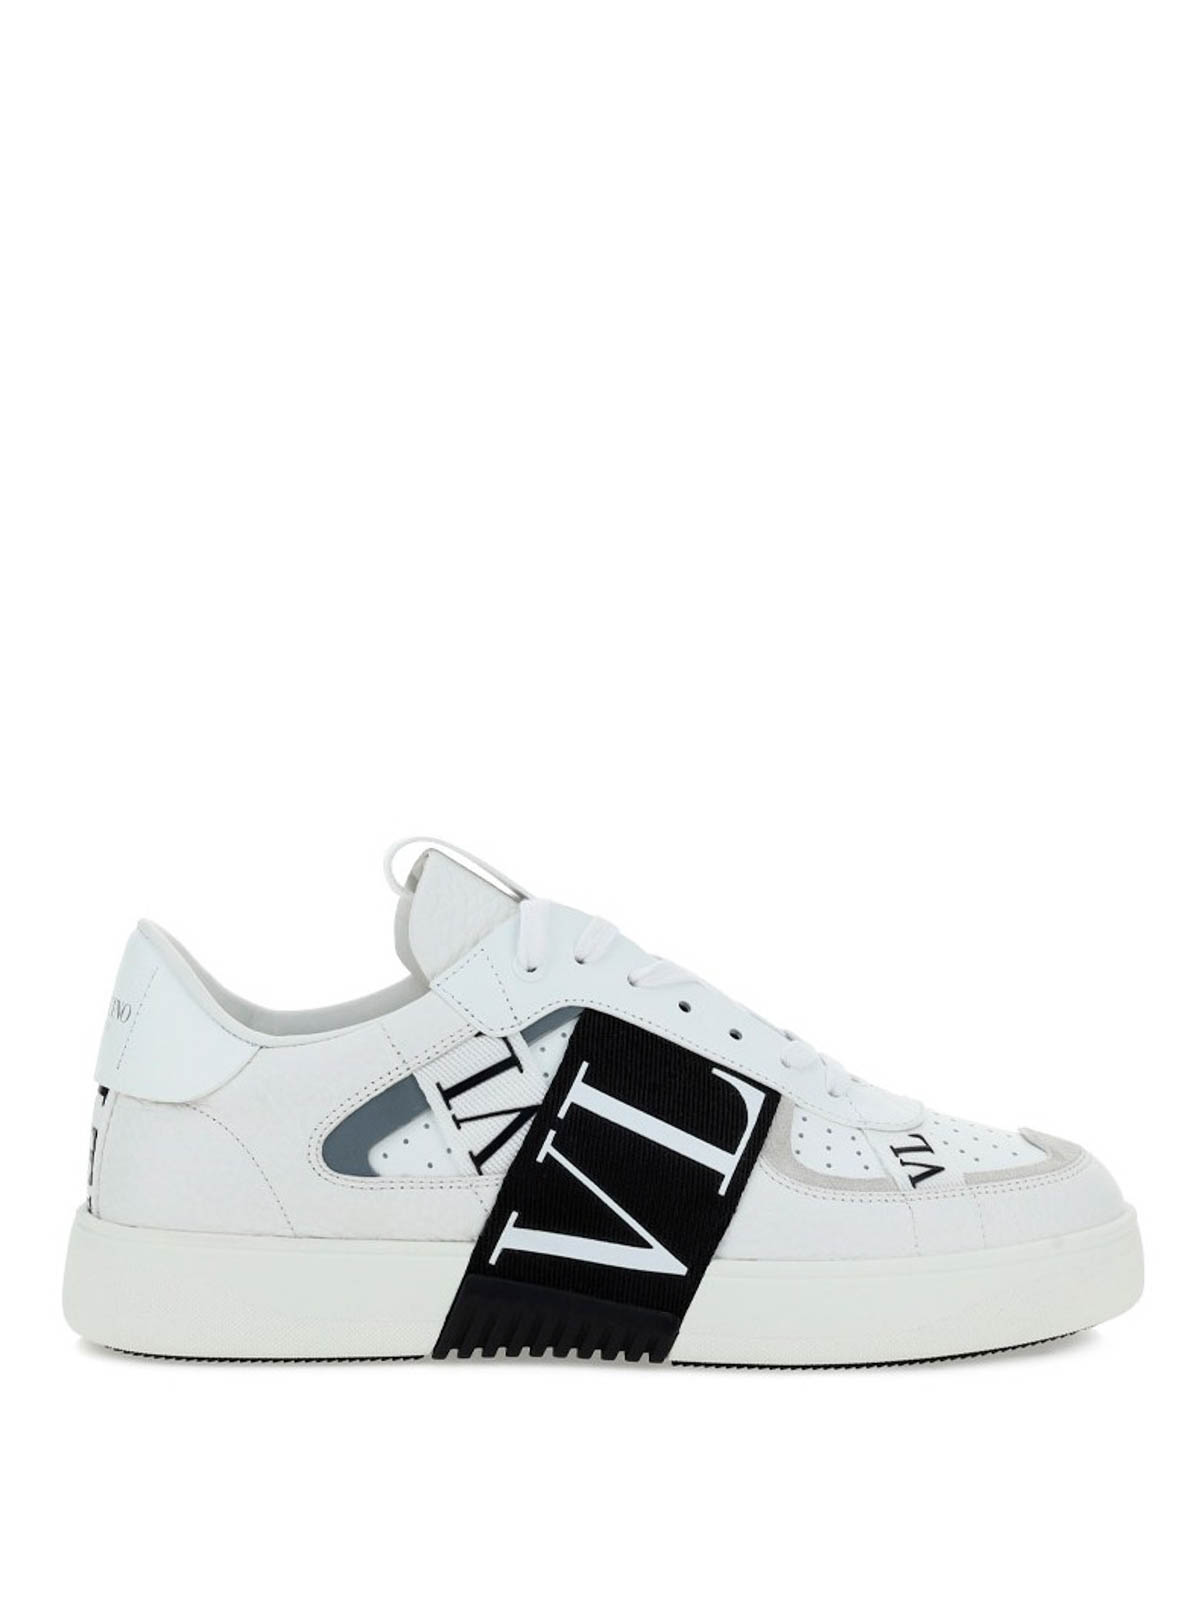 Valentino Leathers VL7N sneakers